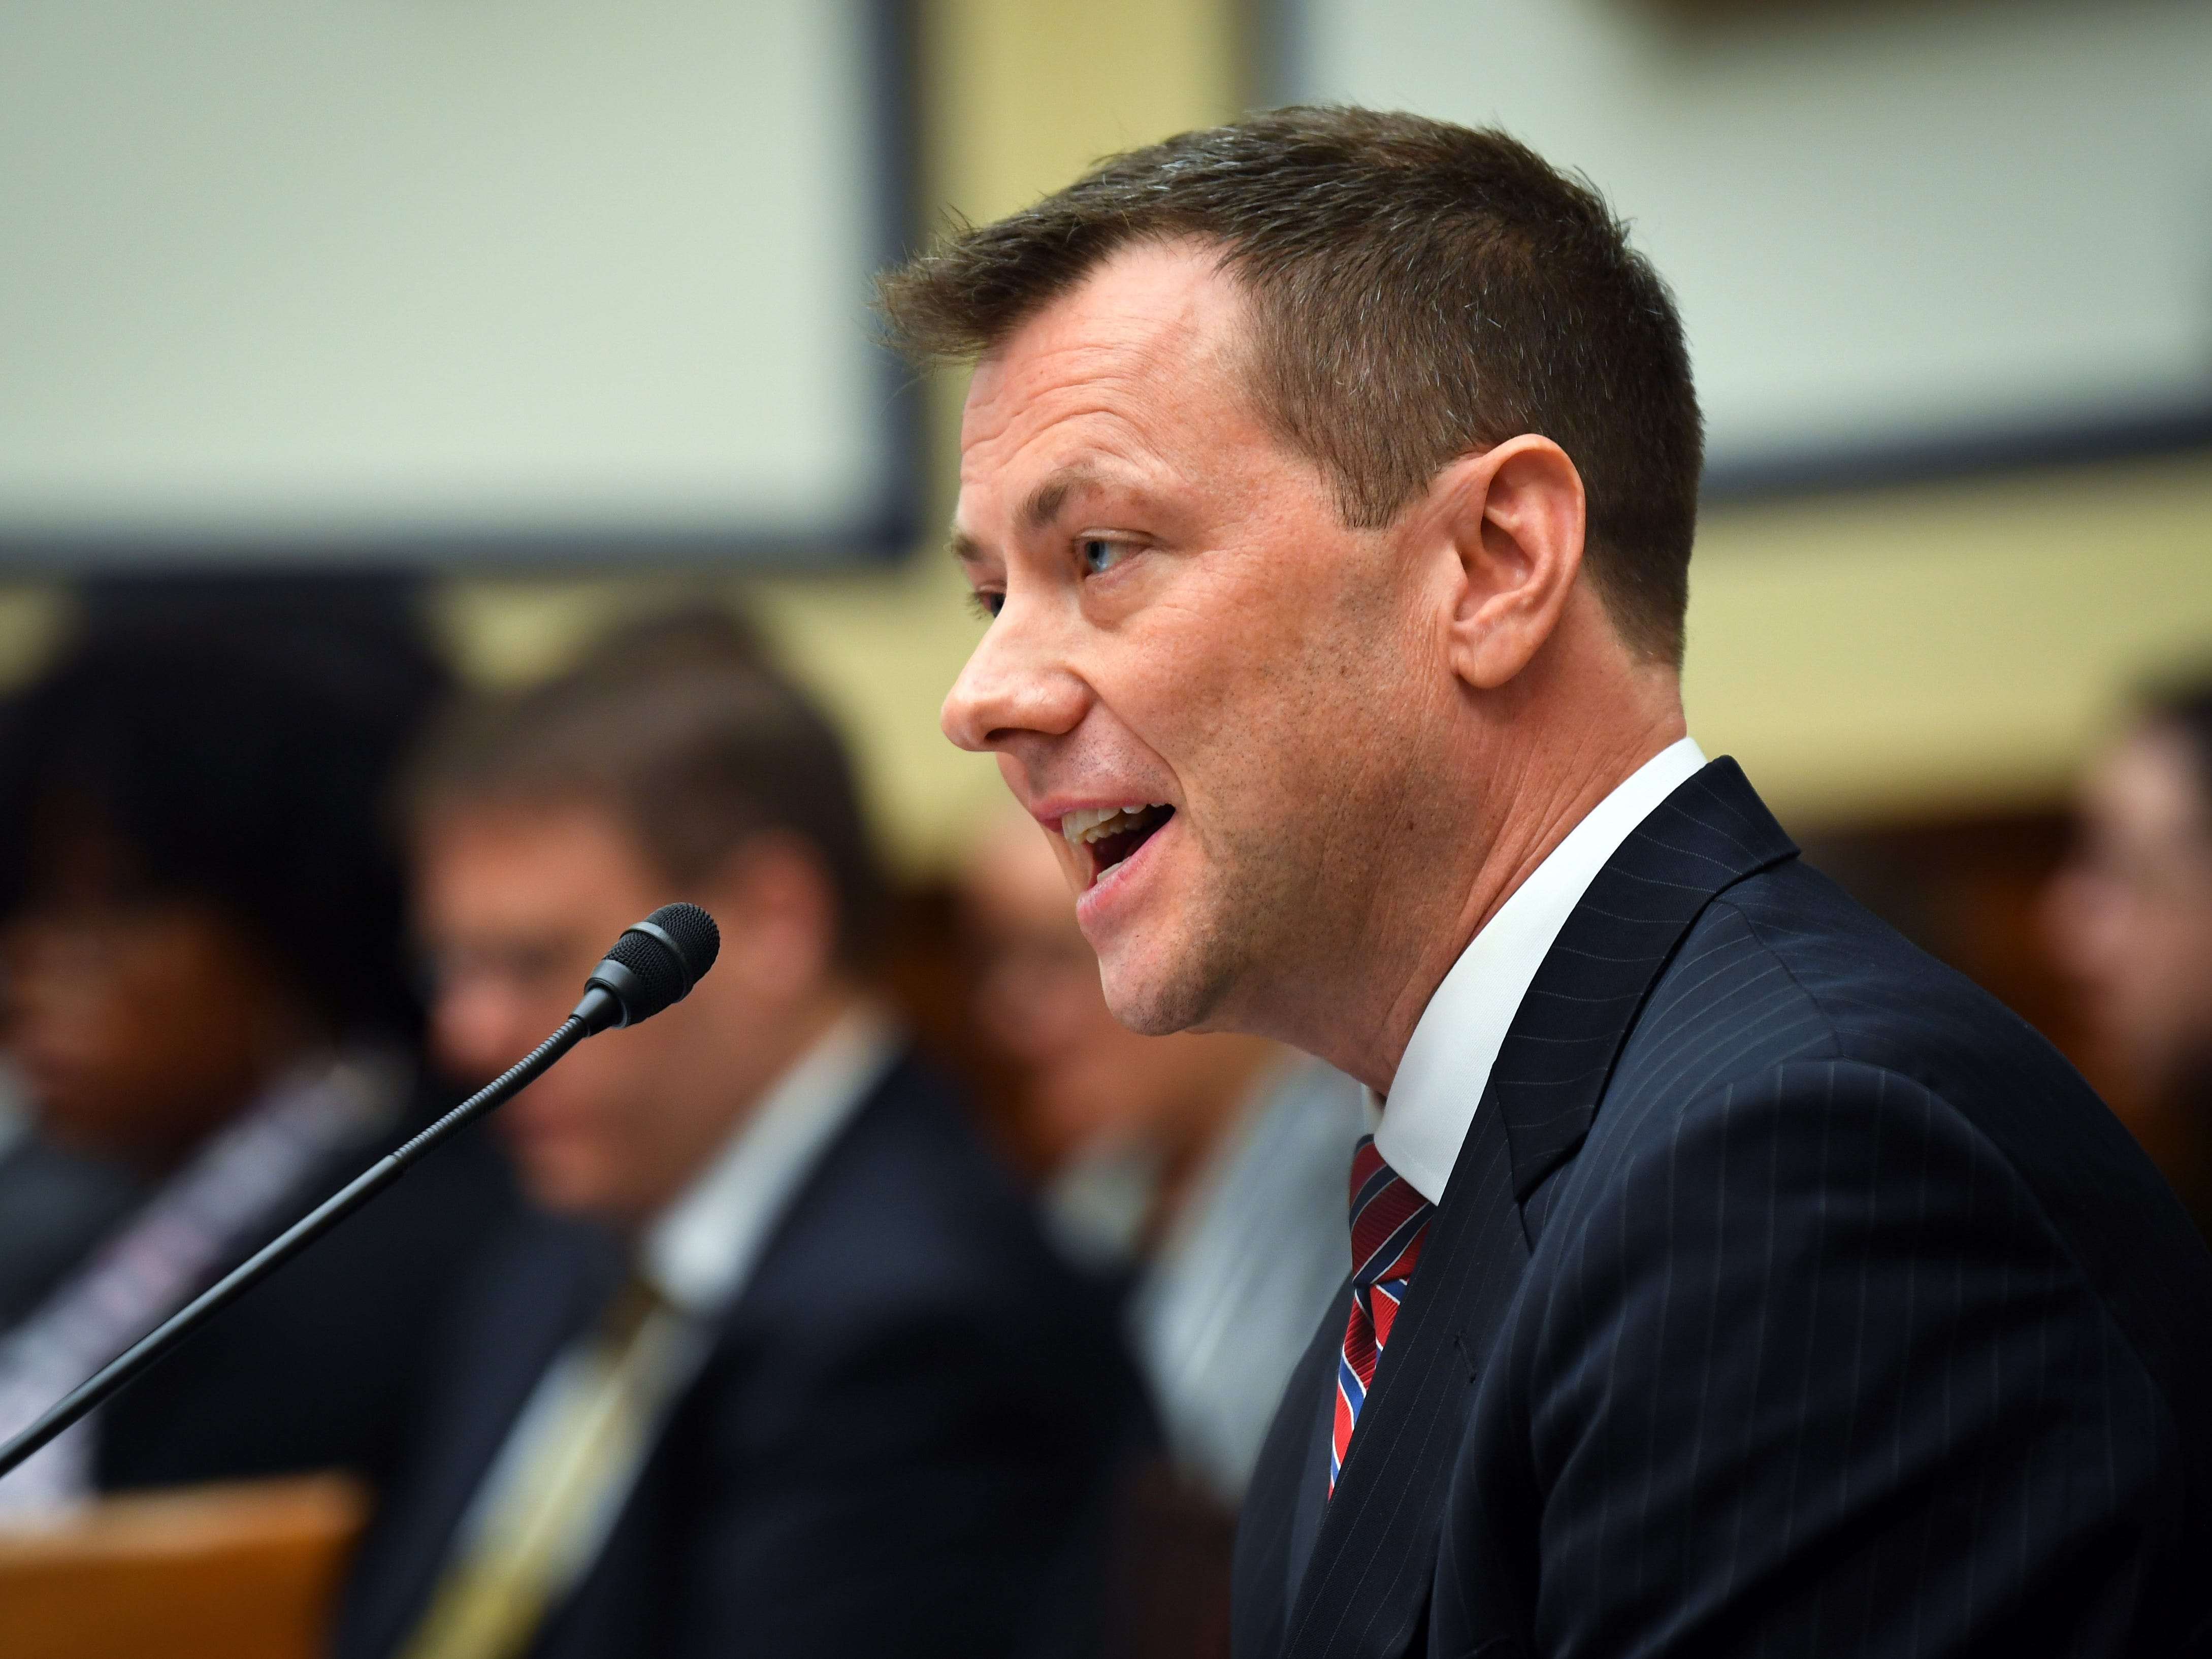 July 12, 2018; Washington, DC, USA; FBI Deputy Assistant Director Peter Strzok testifies before the House Committee on the Judiciary and House Committee on Oversight and Government Reform joint hearing on 'Oversight of FBI and DOJ Actions Surrounding the 2016 Election' on July 12, 2018 in Washington.  Mandatory Credit: Jack Gruber-USA TODAY ORIG FILE ID:  20180712_ajw_usa_080.jpg